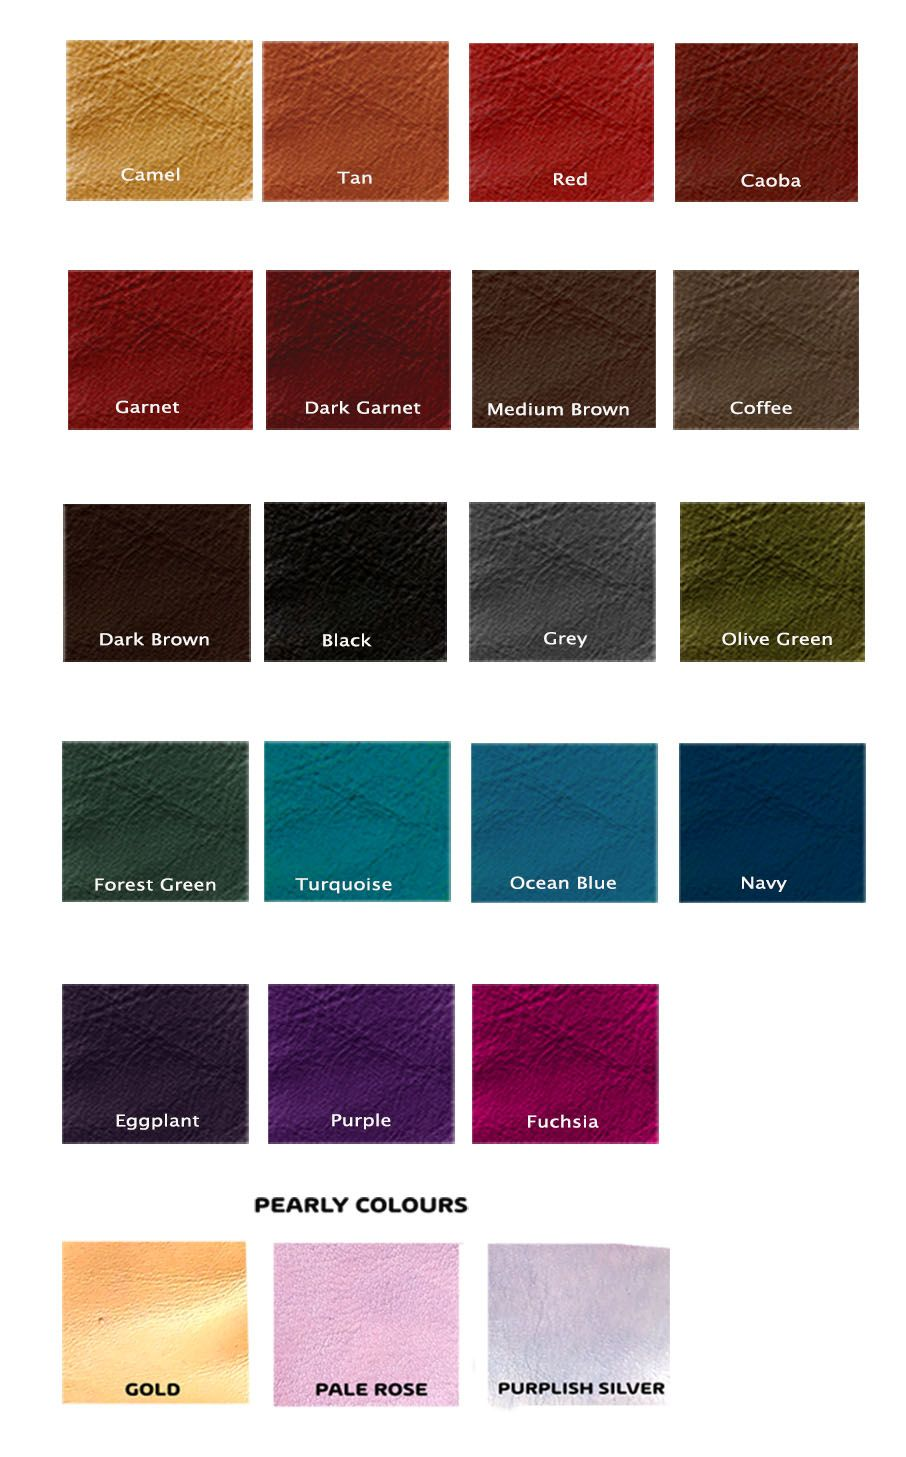 COLOR PALETTE (con TAN) 2021.jpg